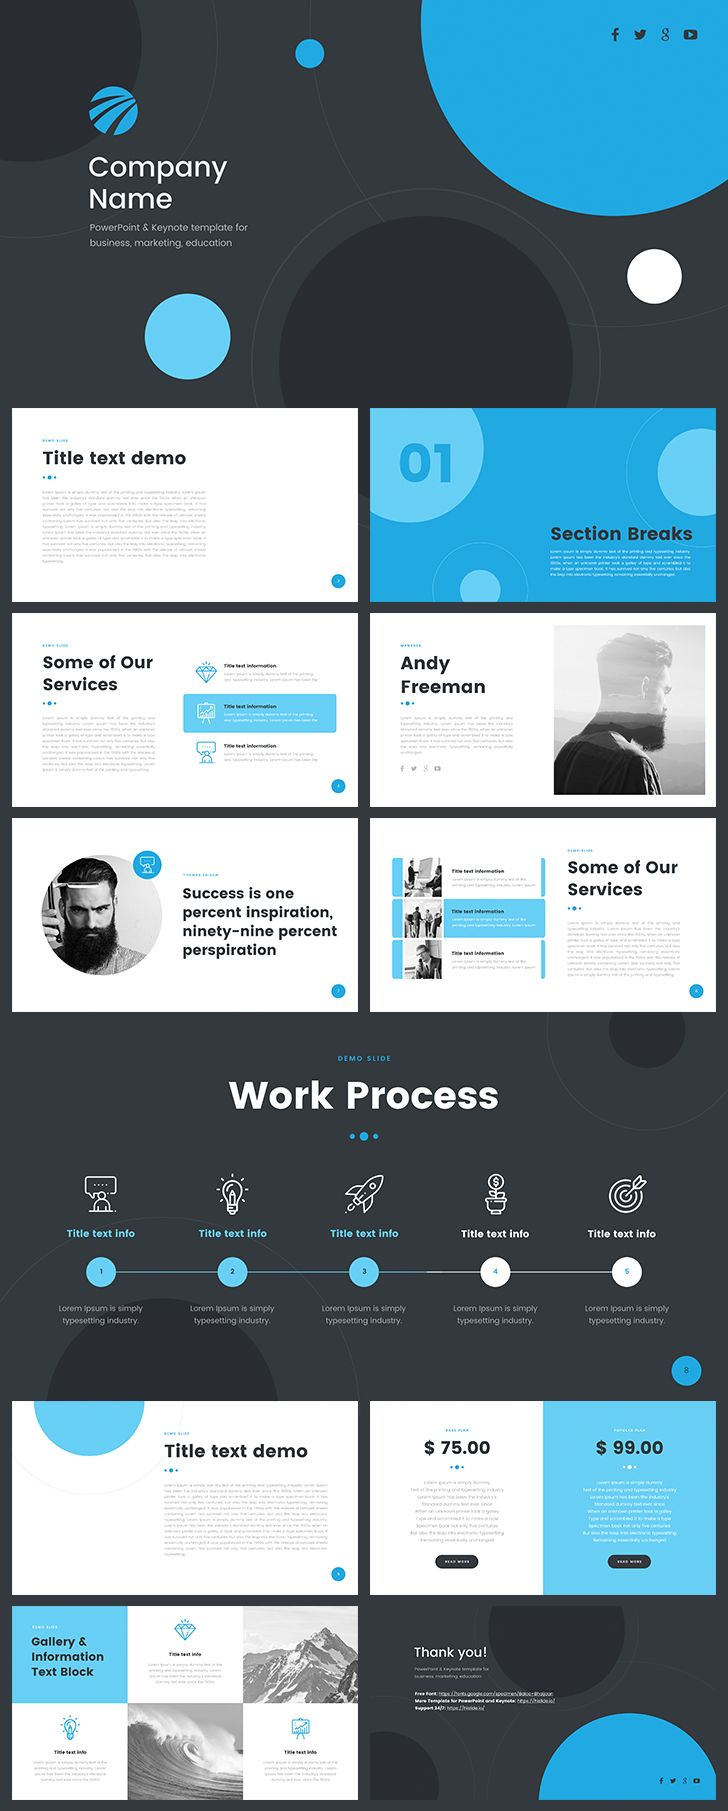 Download Free PowerPoint Template https://goo.gl/Dc1Rn5 #ppt #powerpoint #slide #clean #blue #startup #free 12 Unique slides, easy editable, support 24/7. Ideal for report, startup, marketing or education. Section break slide, cover, timeline, pricing table and more.